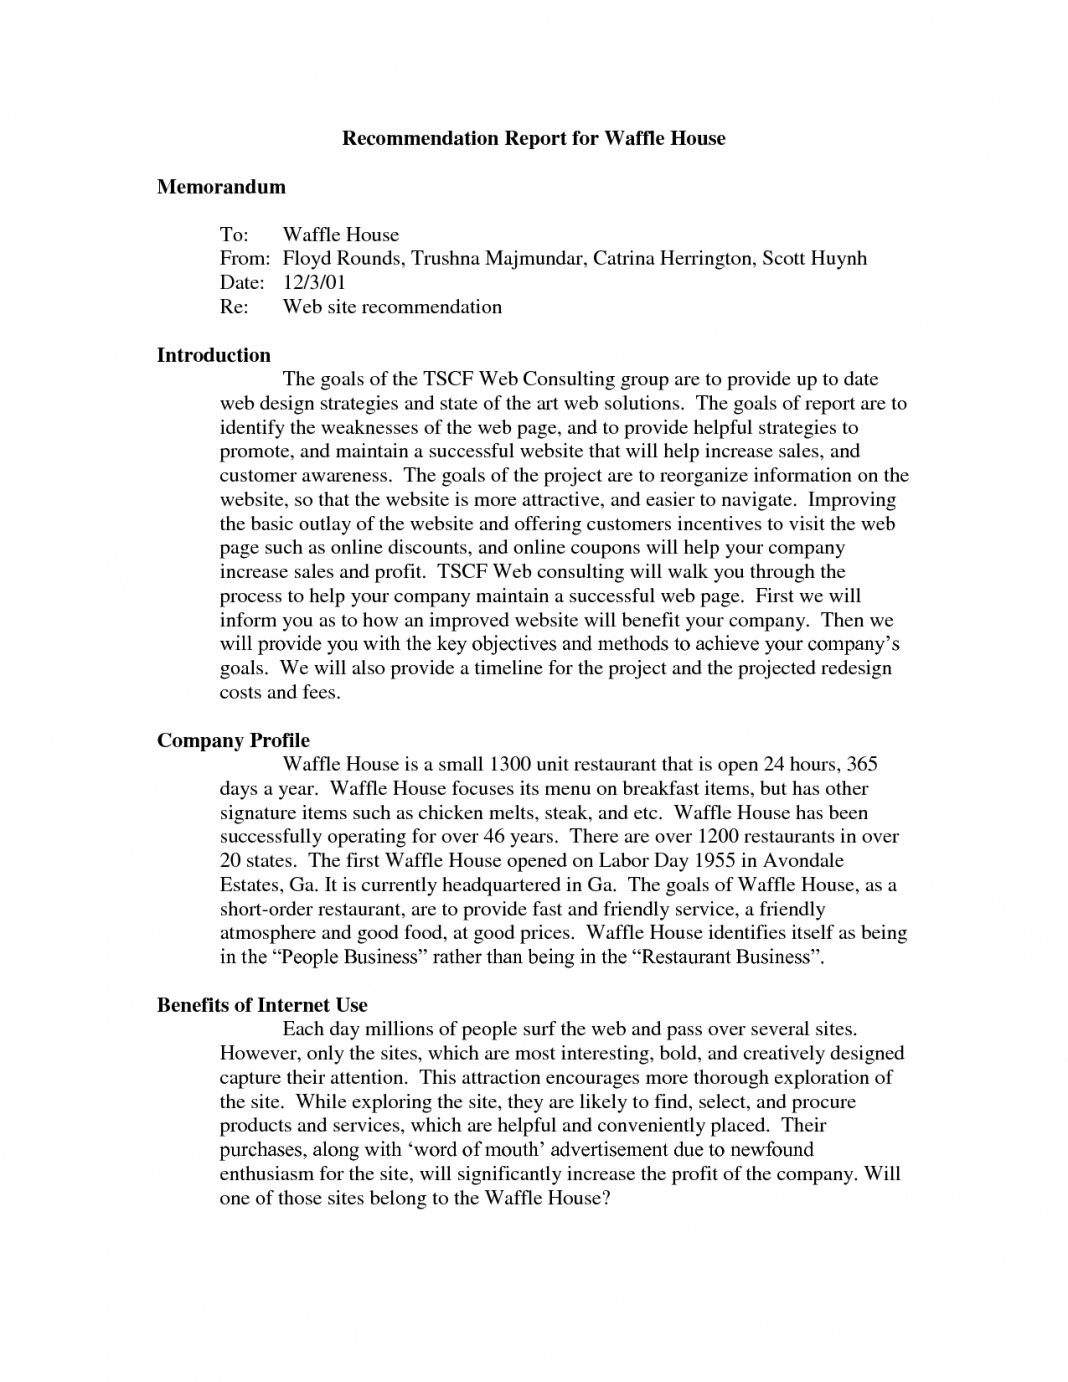 Recommendation Report Example Examples Internal Memo Sample In Recommendation Report Template